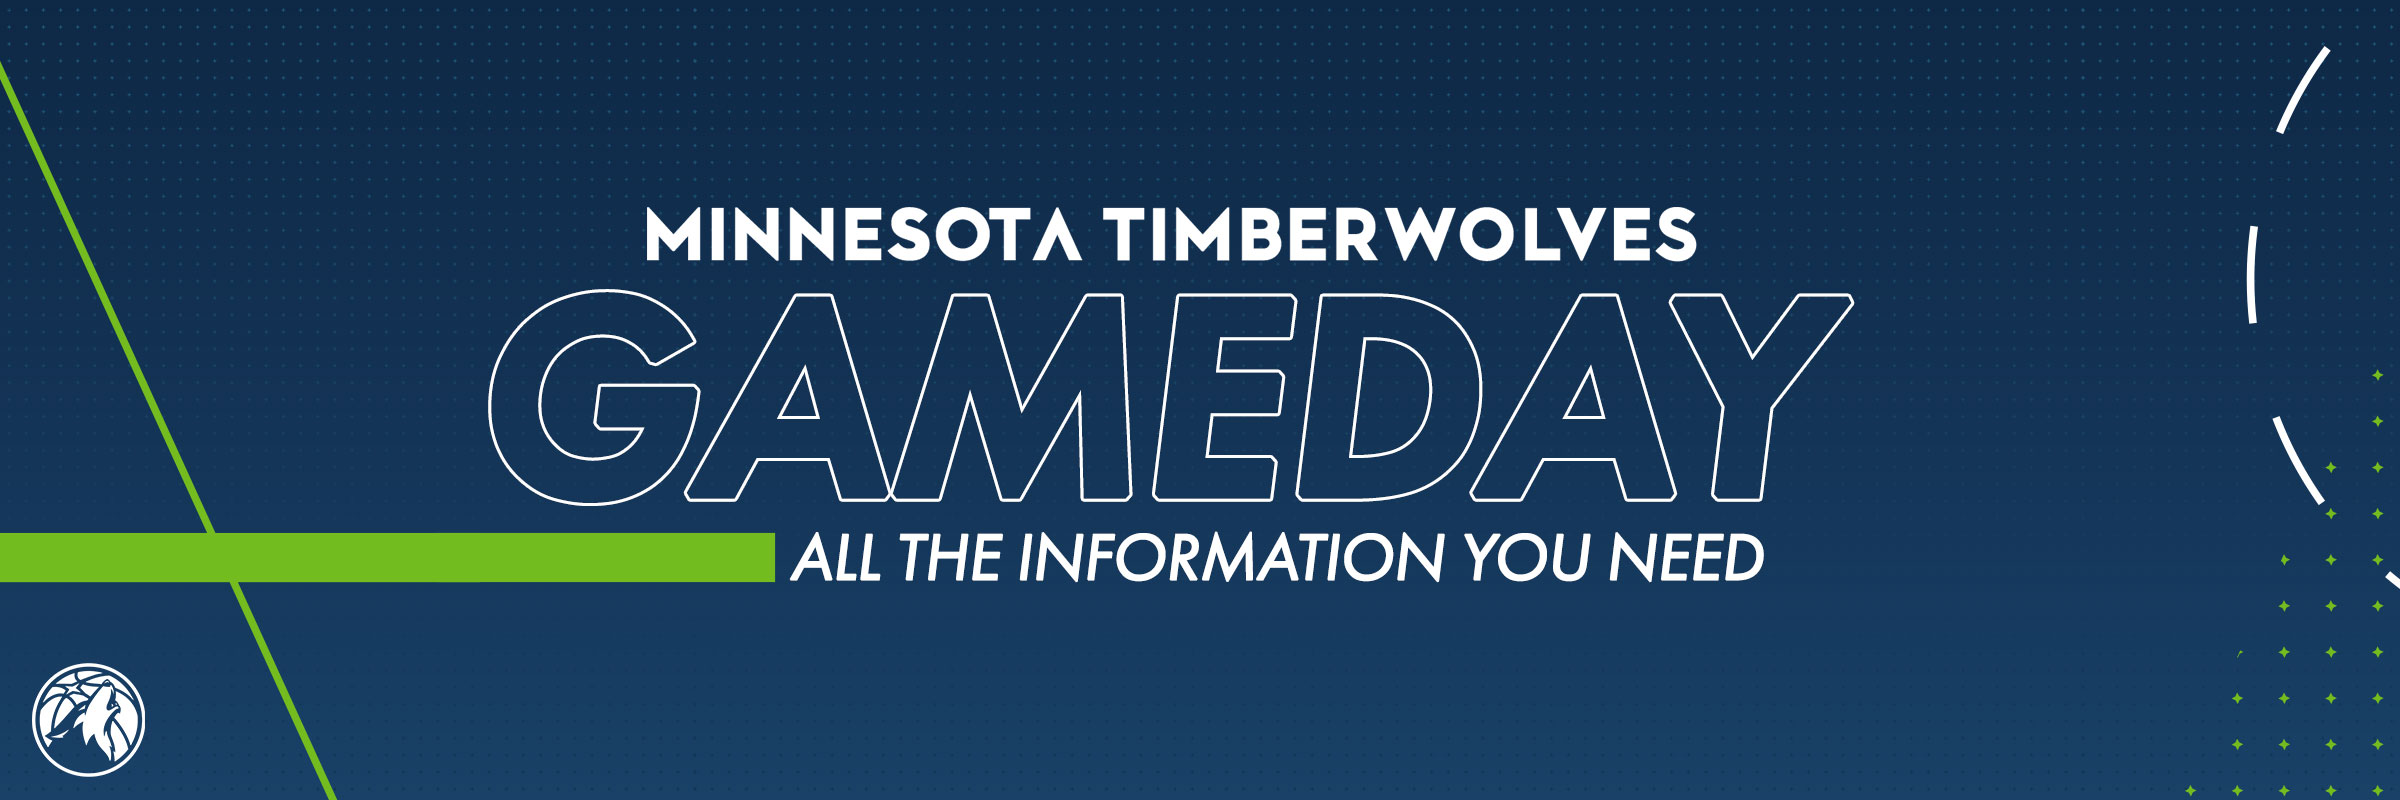 830ed8d2aa2 Timberwolves Gameday Information